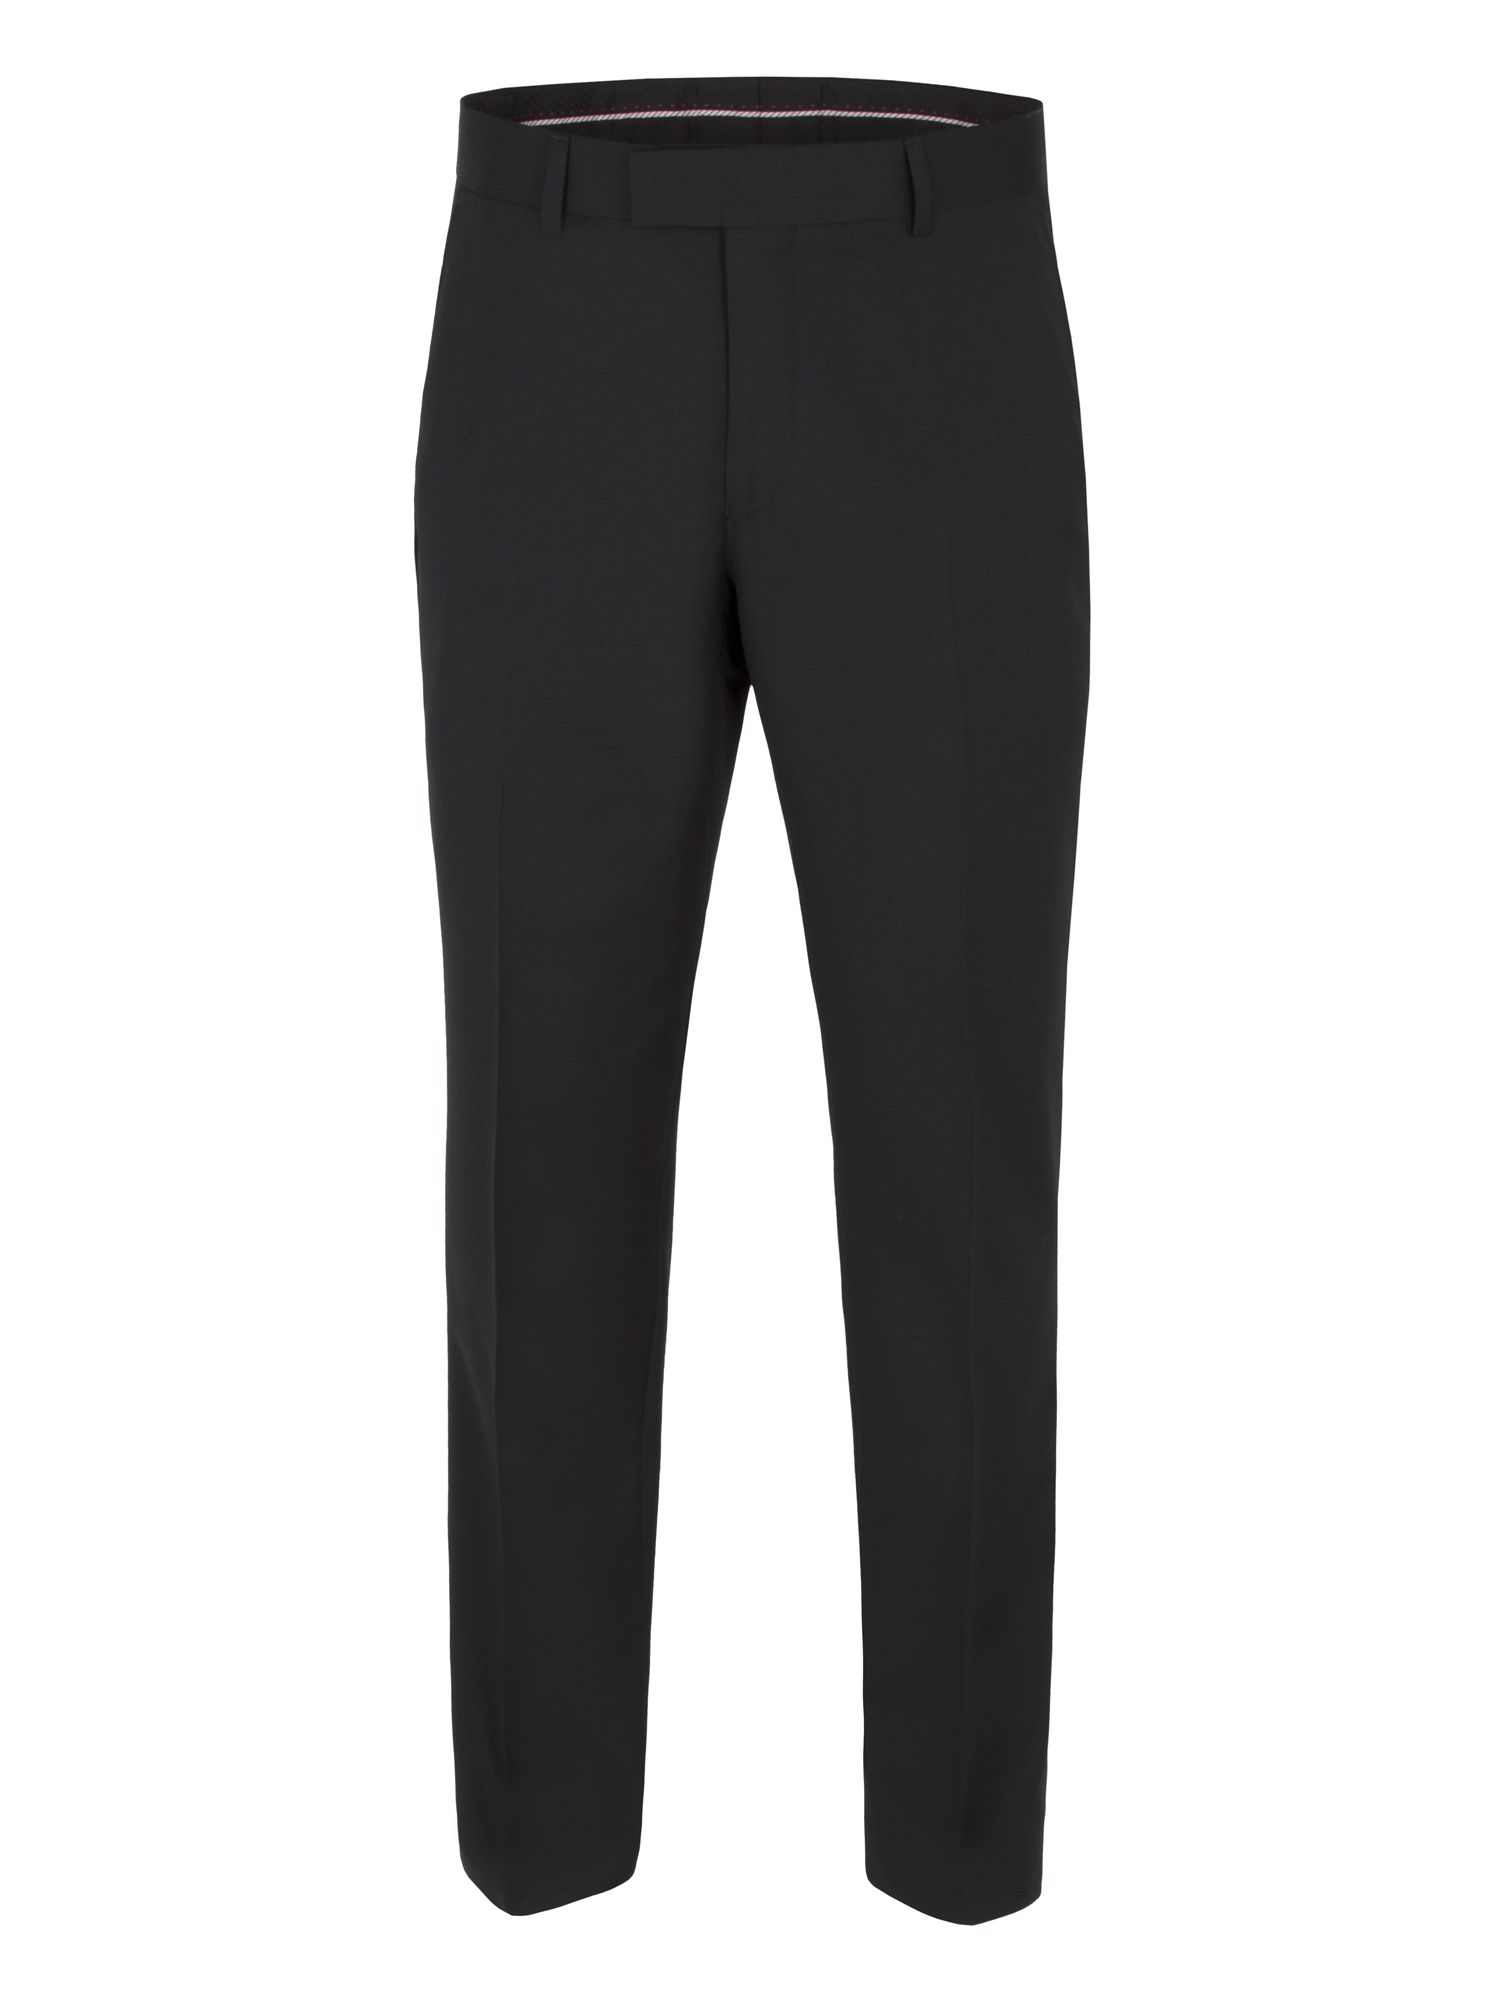 Plain black core trouser